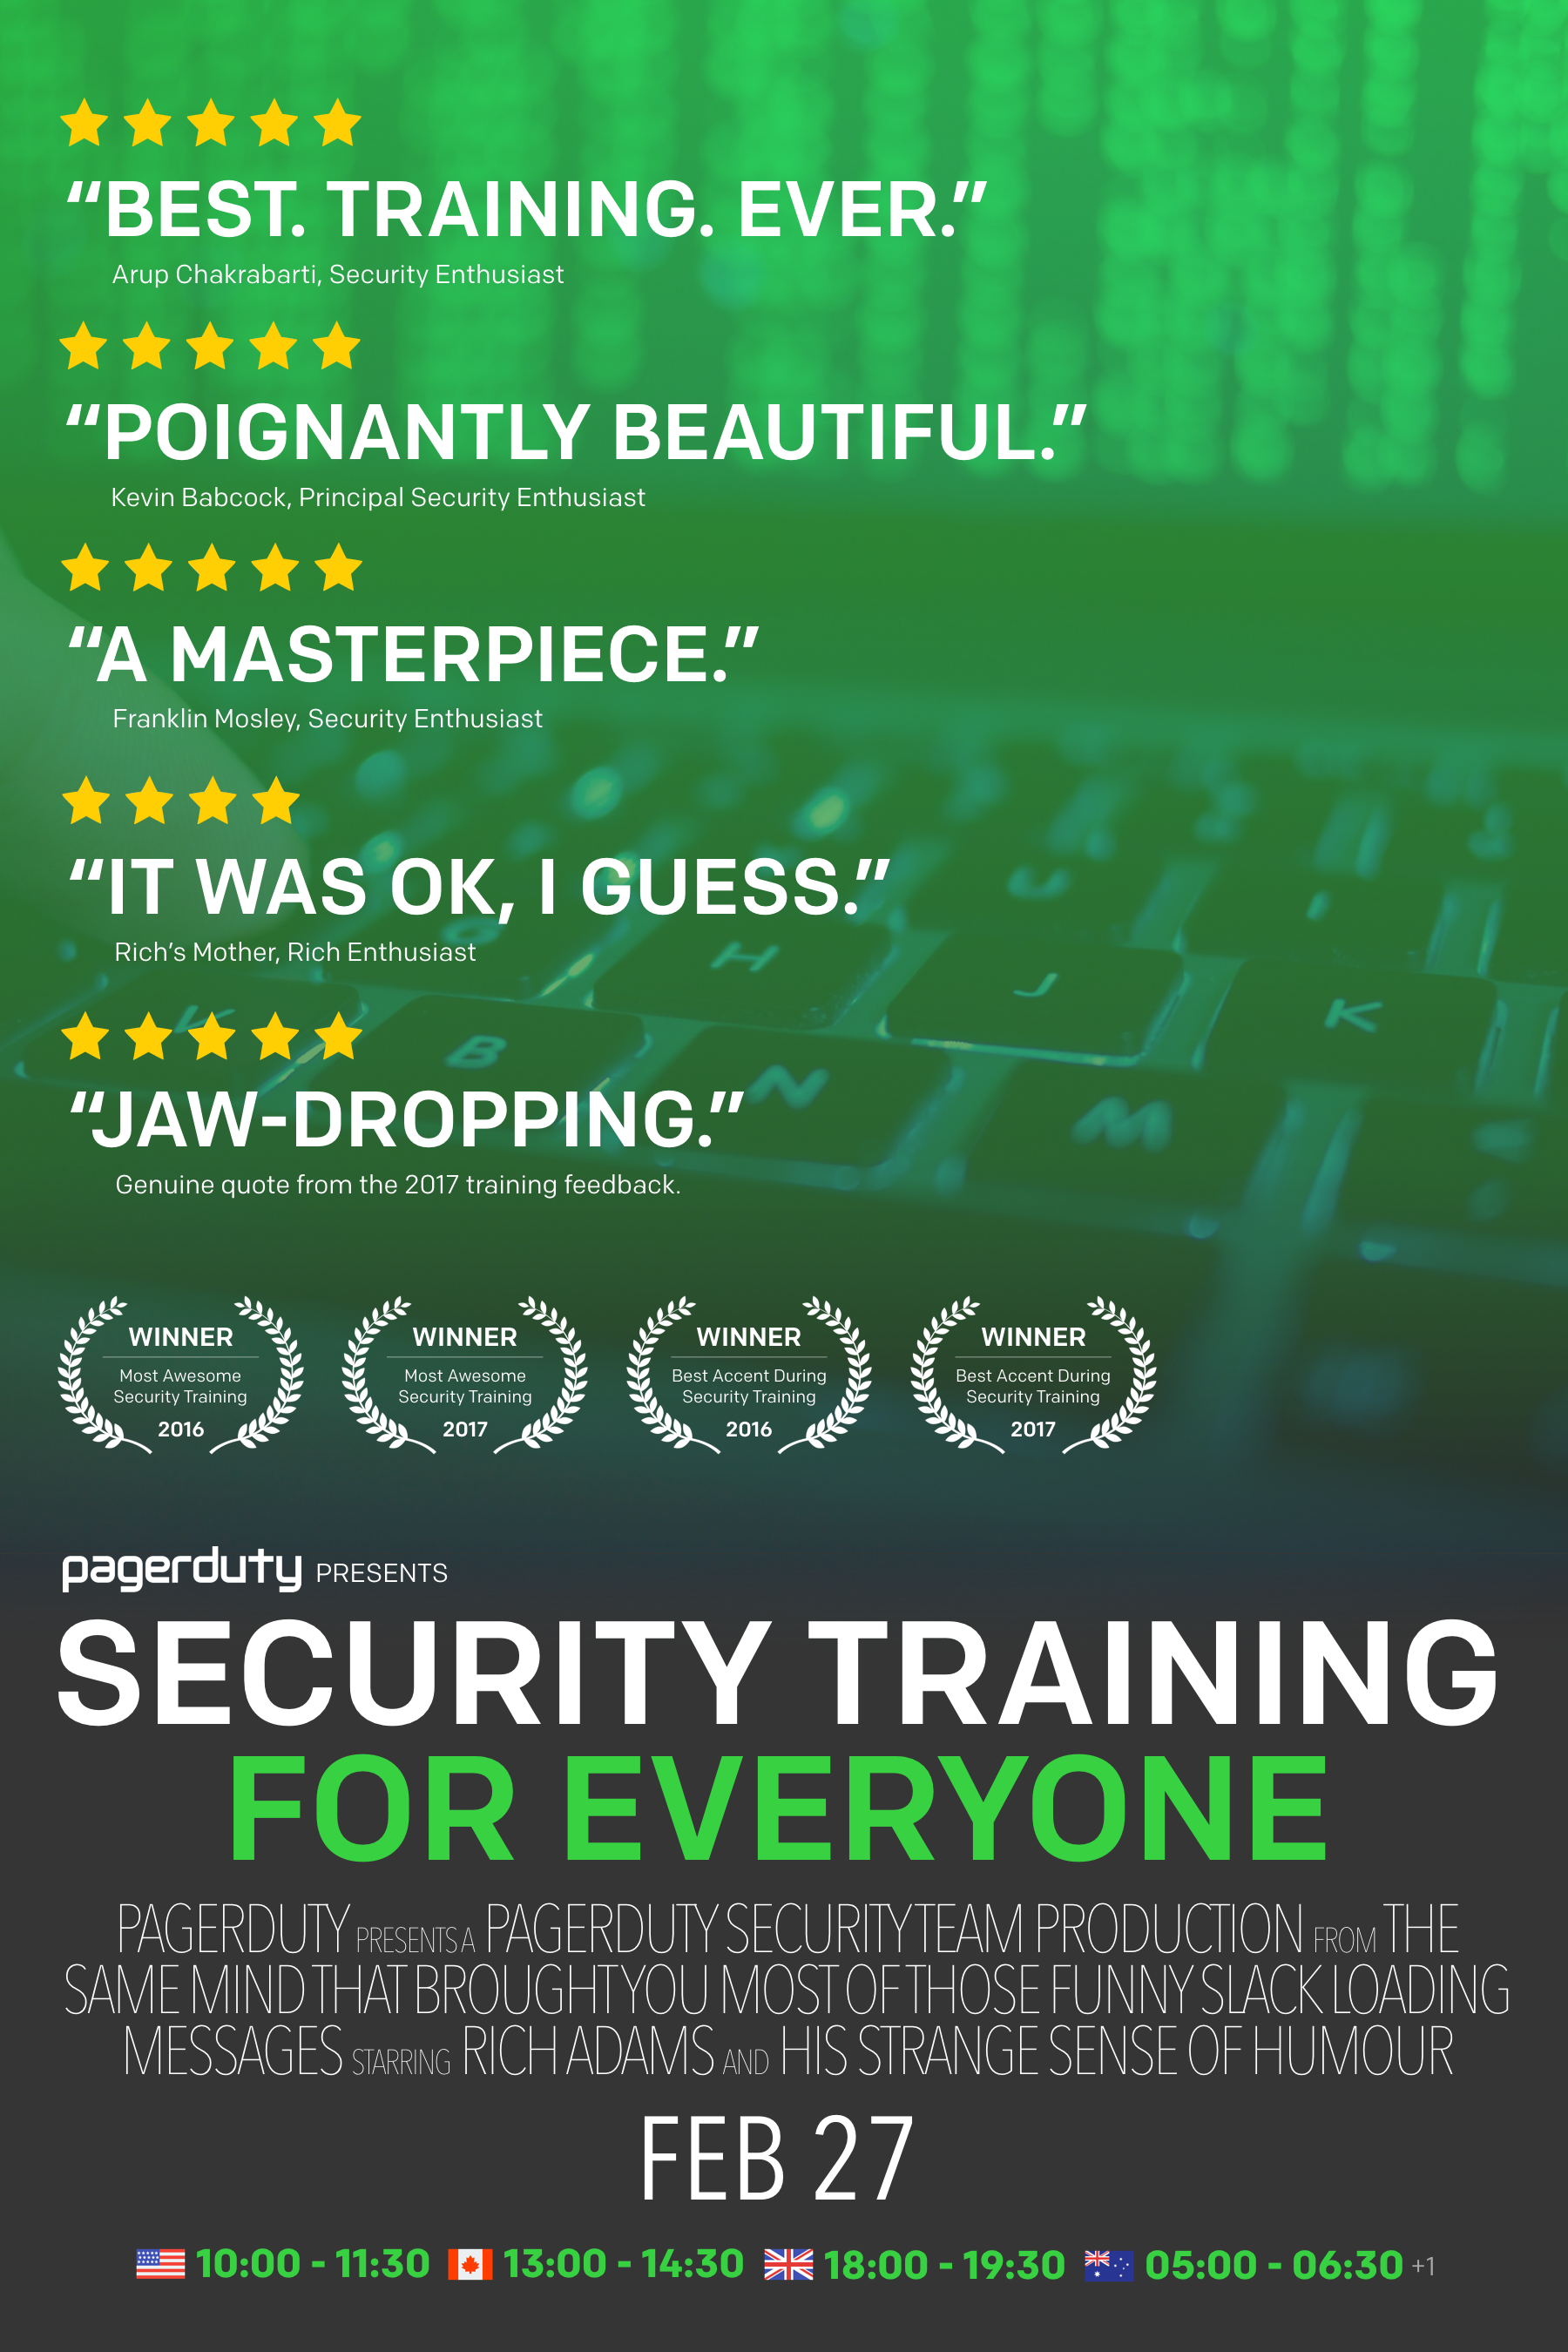 Poster for Security Training for Everyone